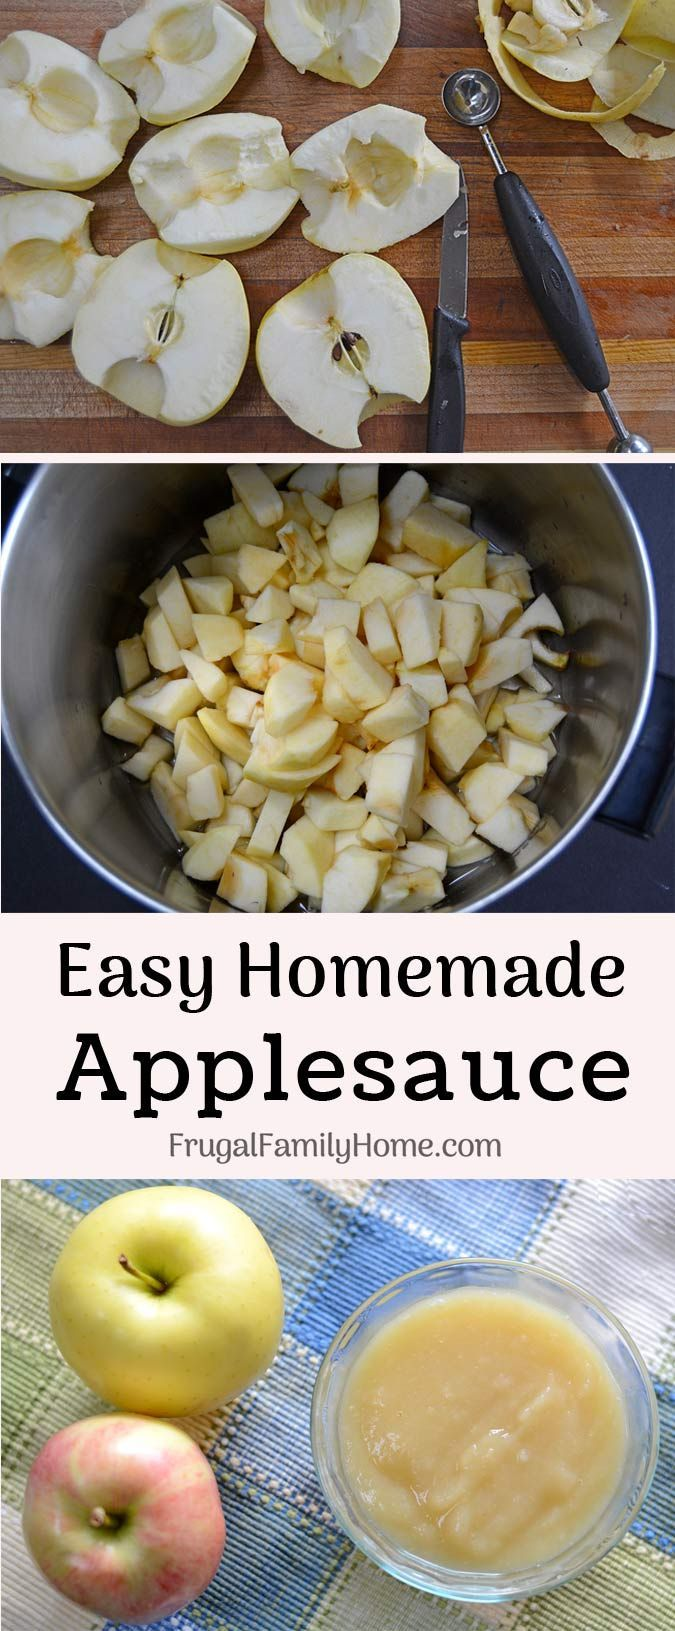 Two Ingredient Easy Homemade Applesauce Recipe- This homemade applesauce recipe is so easy to make with only two ingredients it's healthy too. It's prepared on the stovetop with no sugar added. We lov (How To Make Gravy Kids)